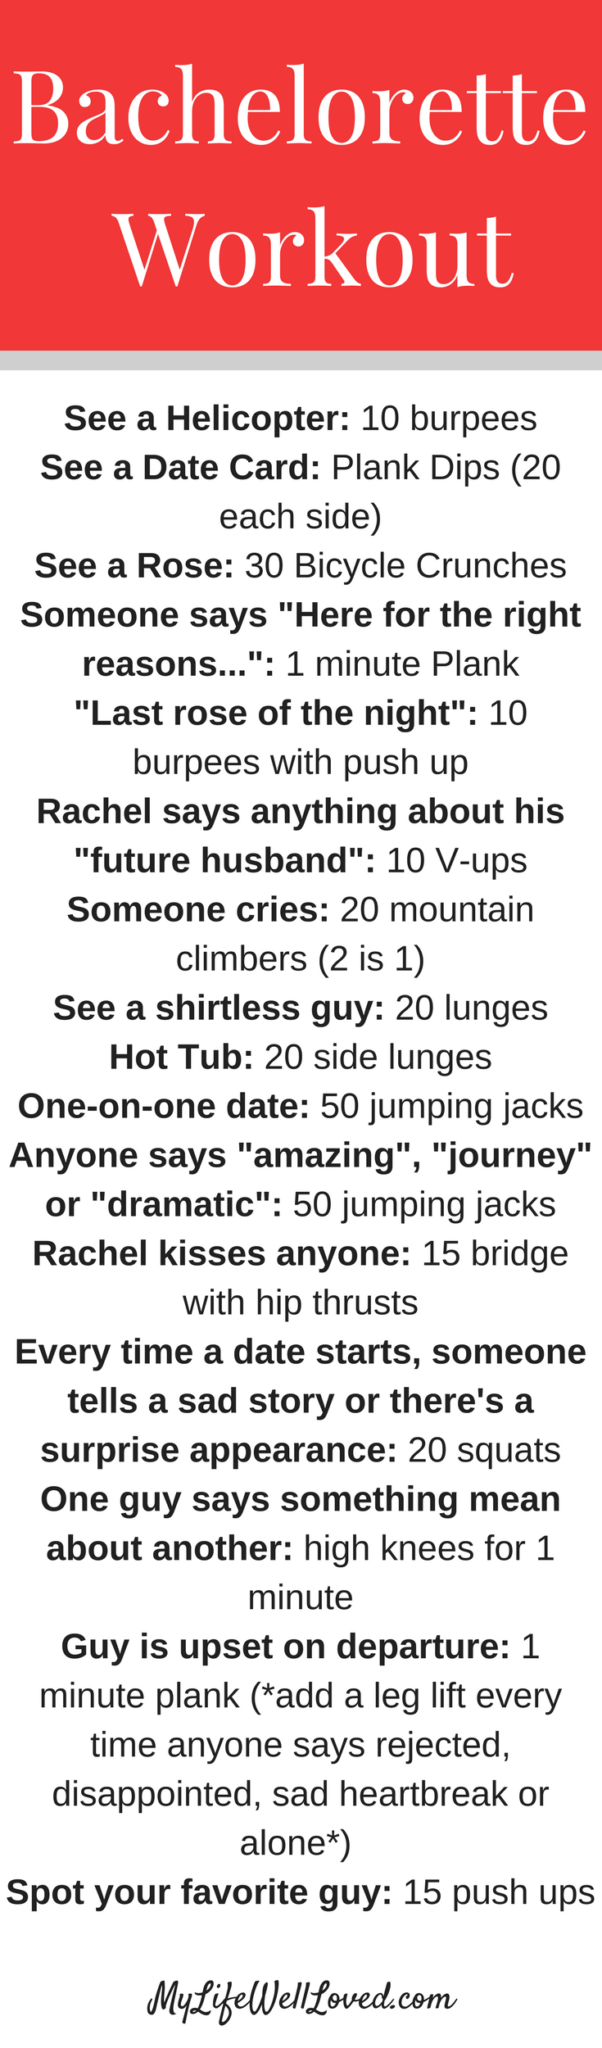 The Bachelorette Workout Game // The Bachelor Workout Game from Heather of MyLifeWellLoved.com // Bachelorette party ideas